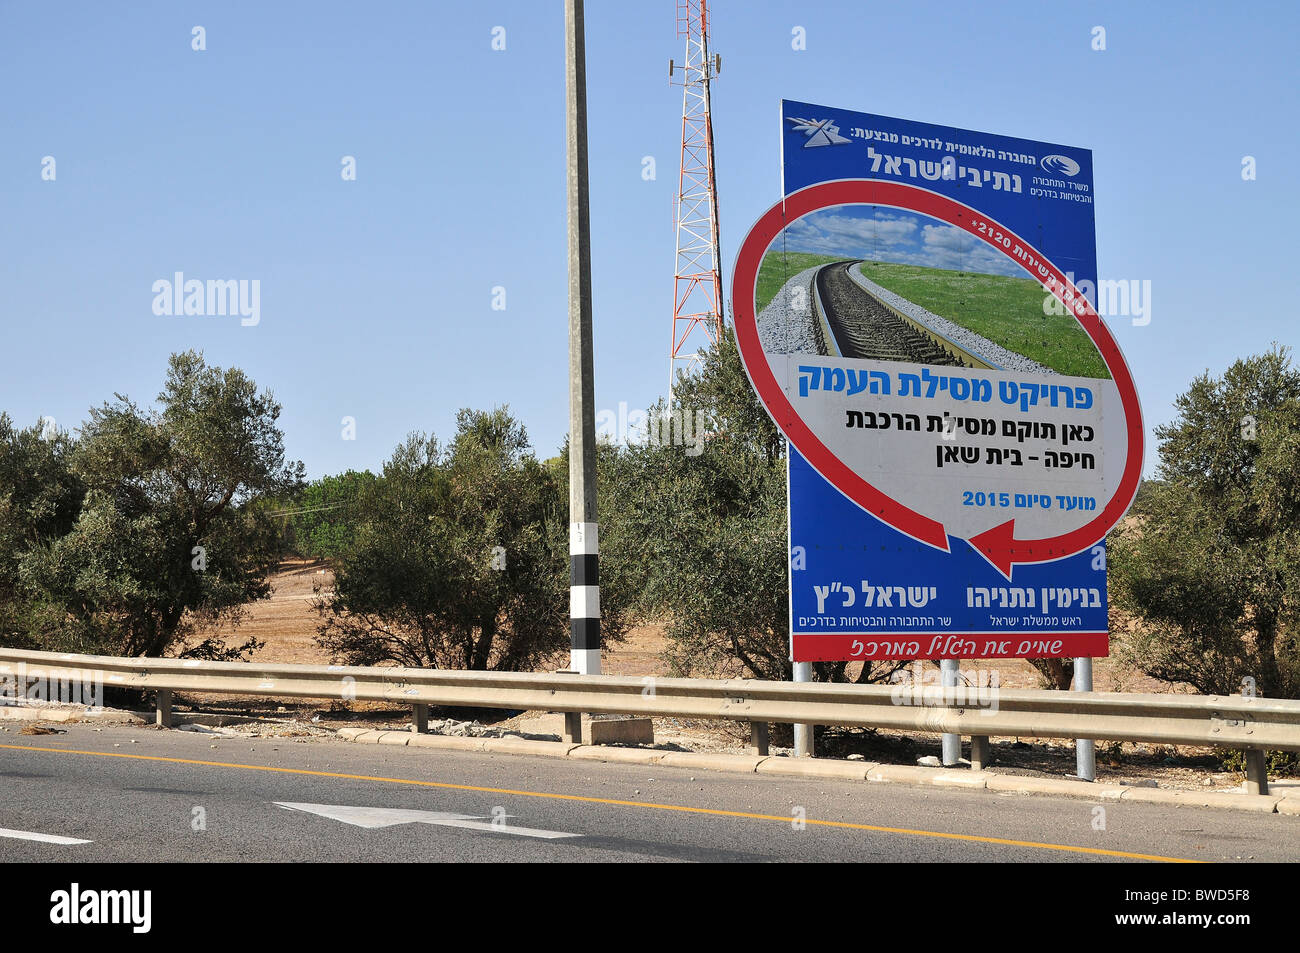 Israel, a road sign announcing the work on the new train line from Haifa to Beit Shean - Stock Image